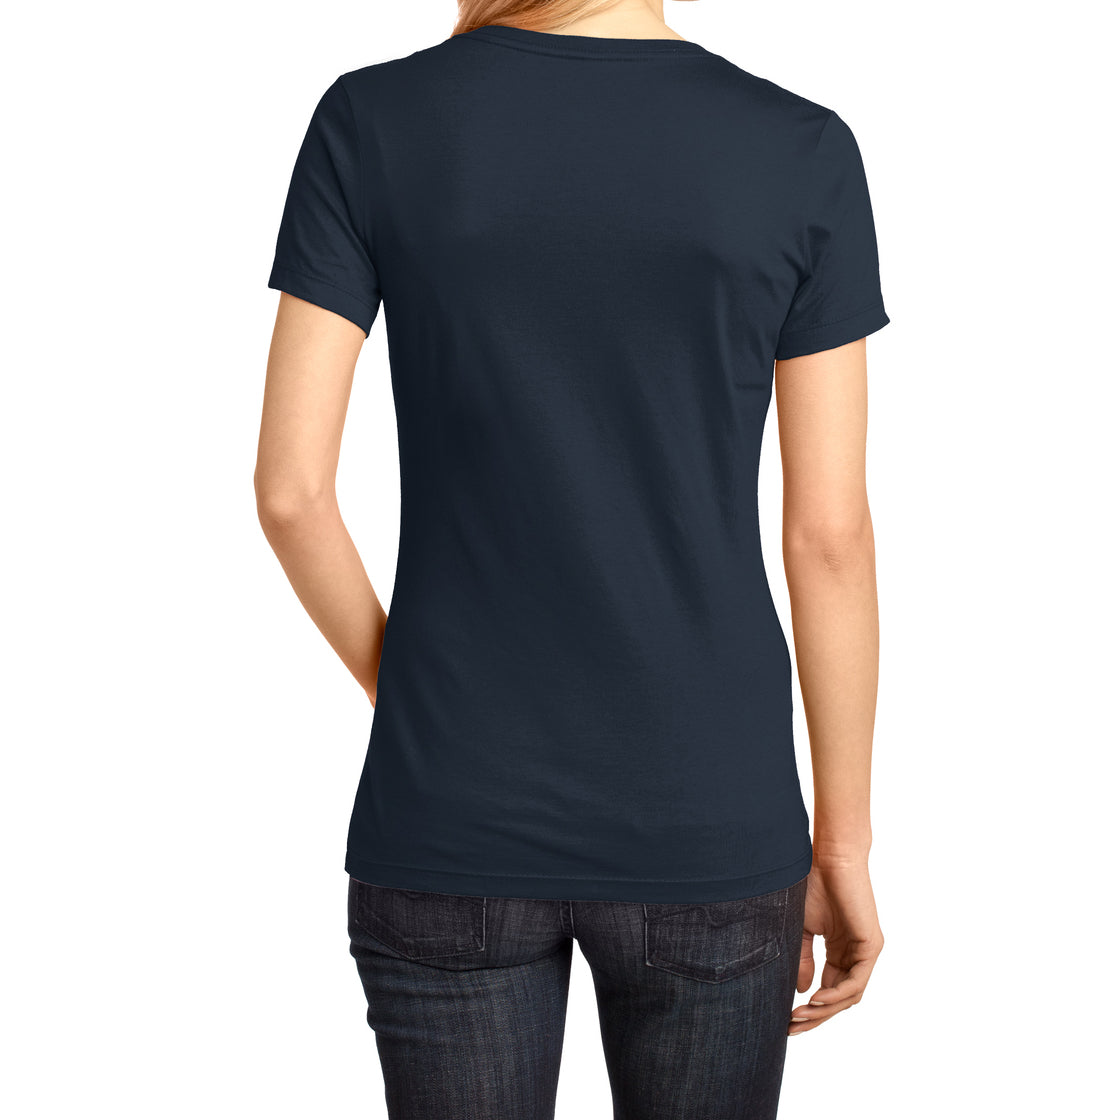 Ladies Perfect Weight V-Neck Tee - New Navy - Back